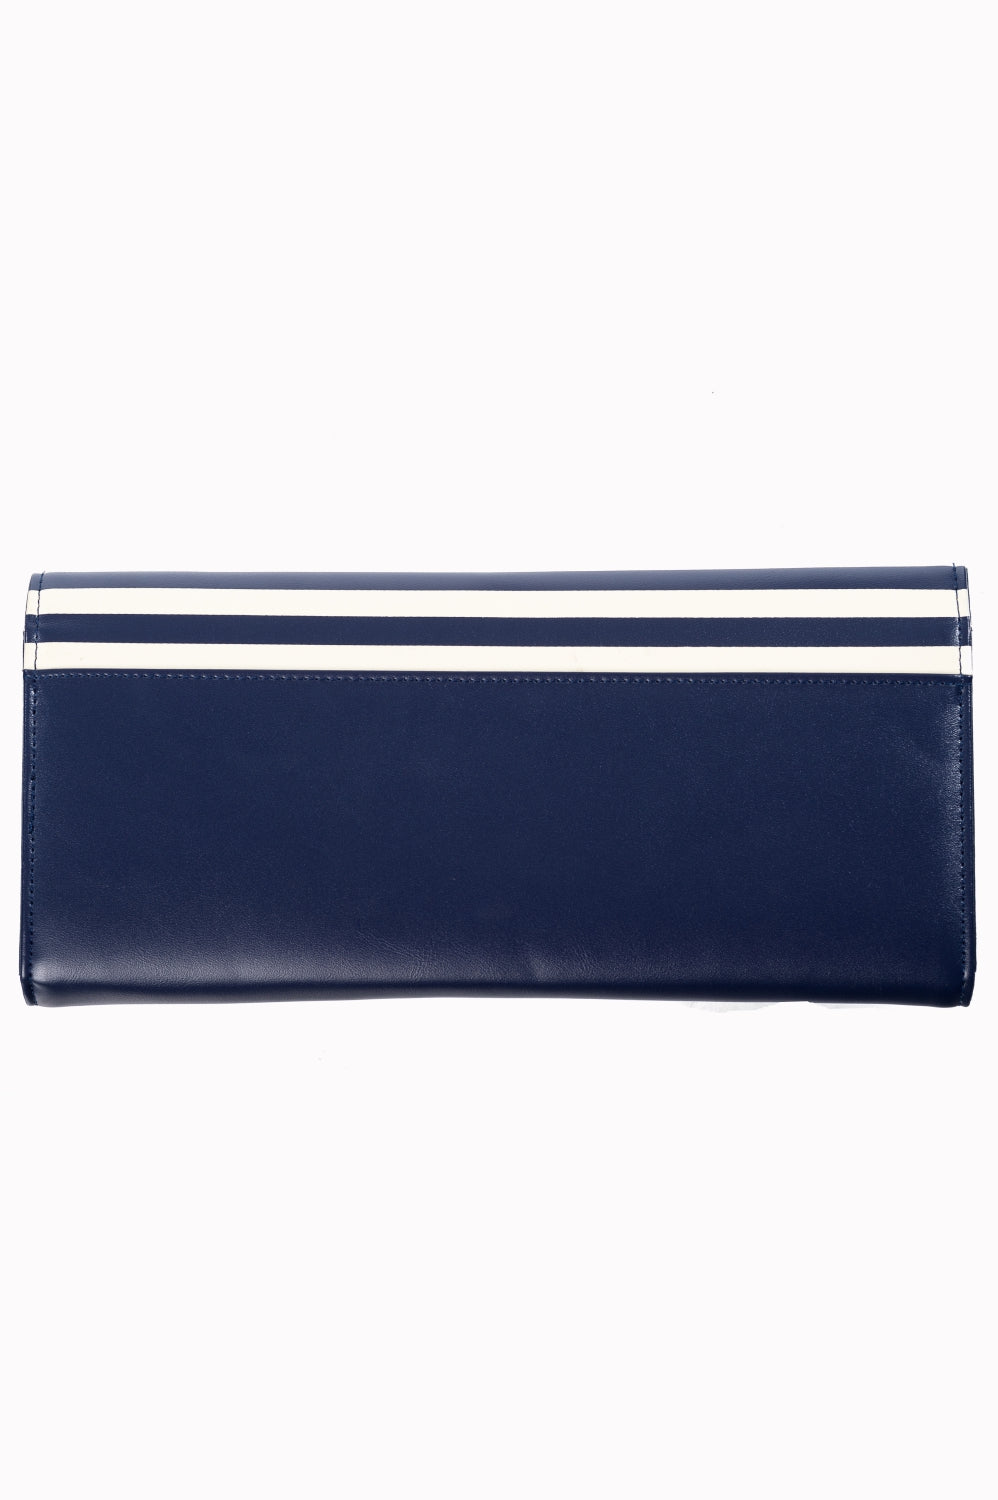 Wallet / Handbag Vintage Nautical Blue - Boutique Freda - Bombus